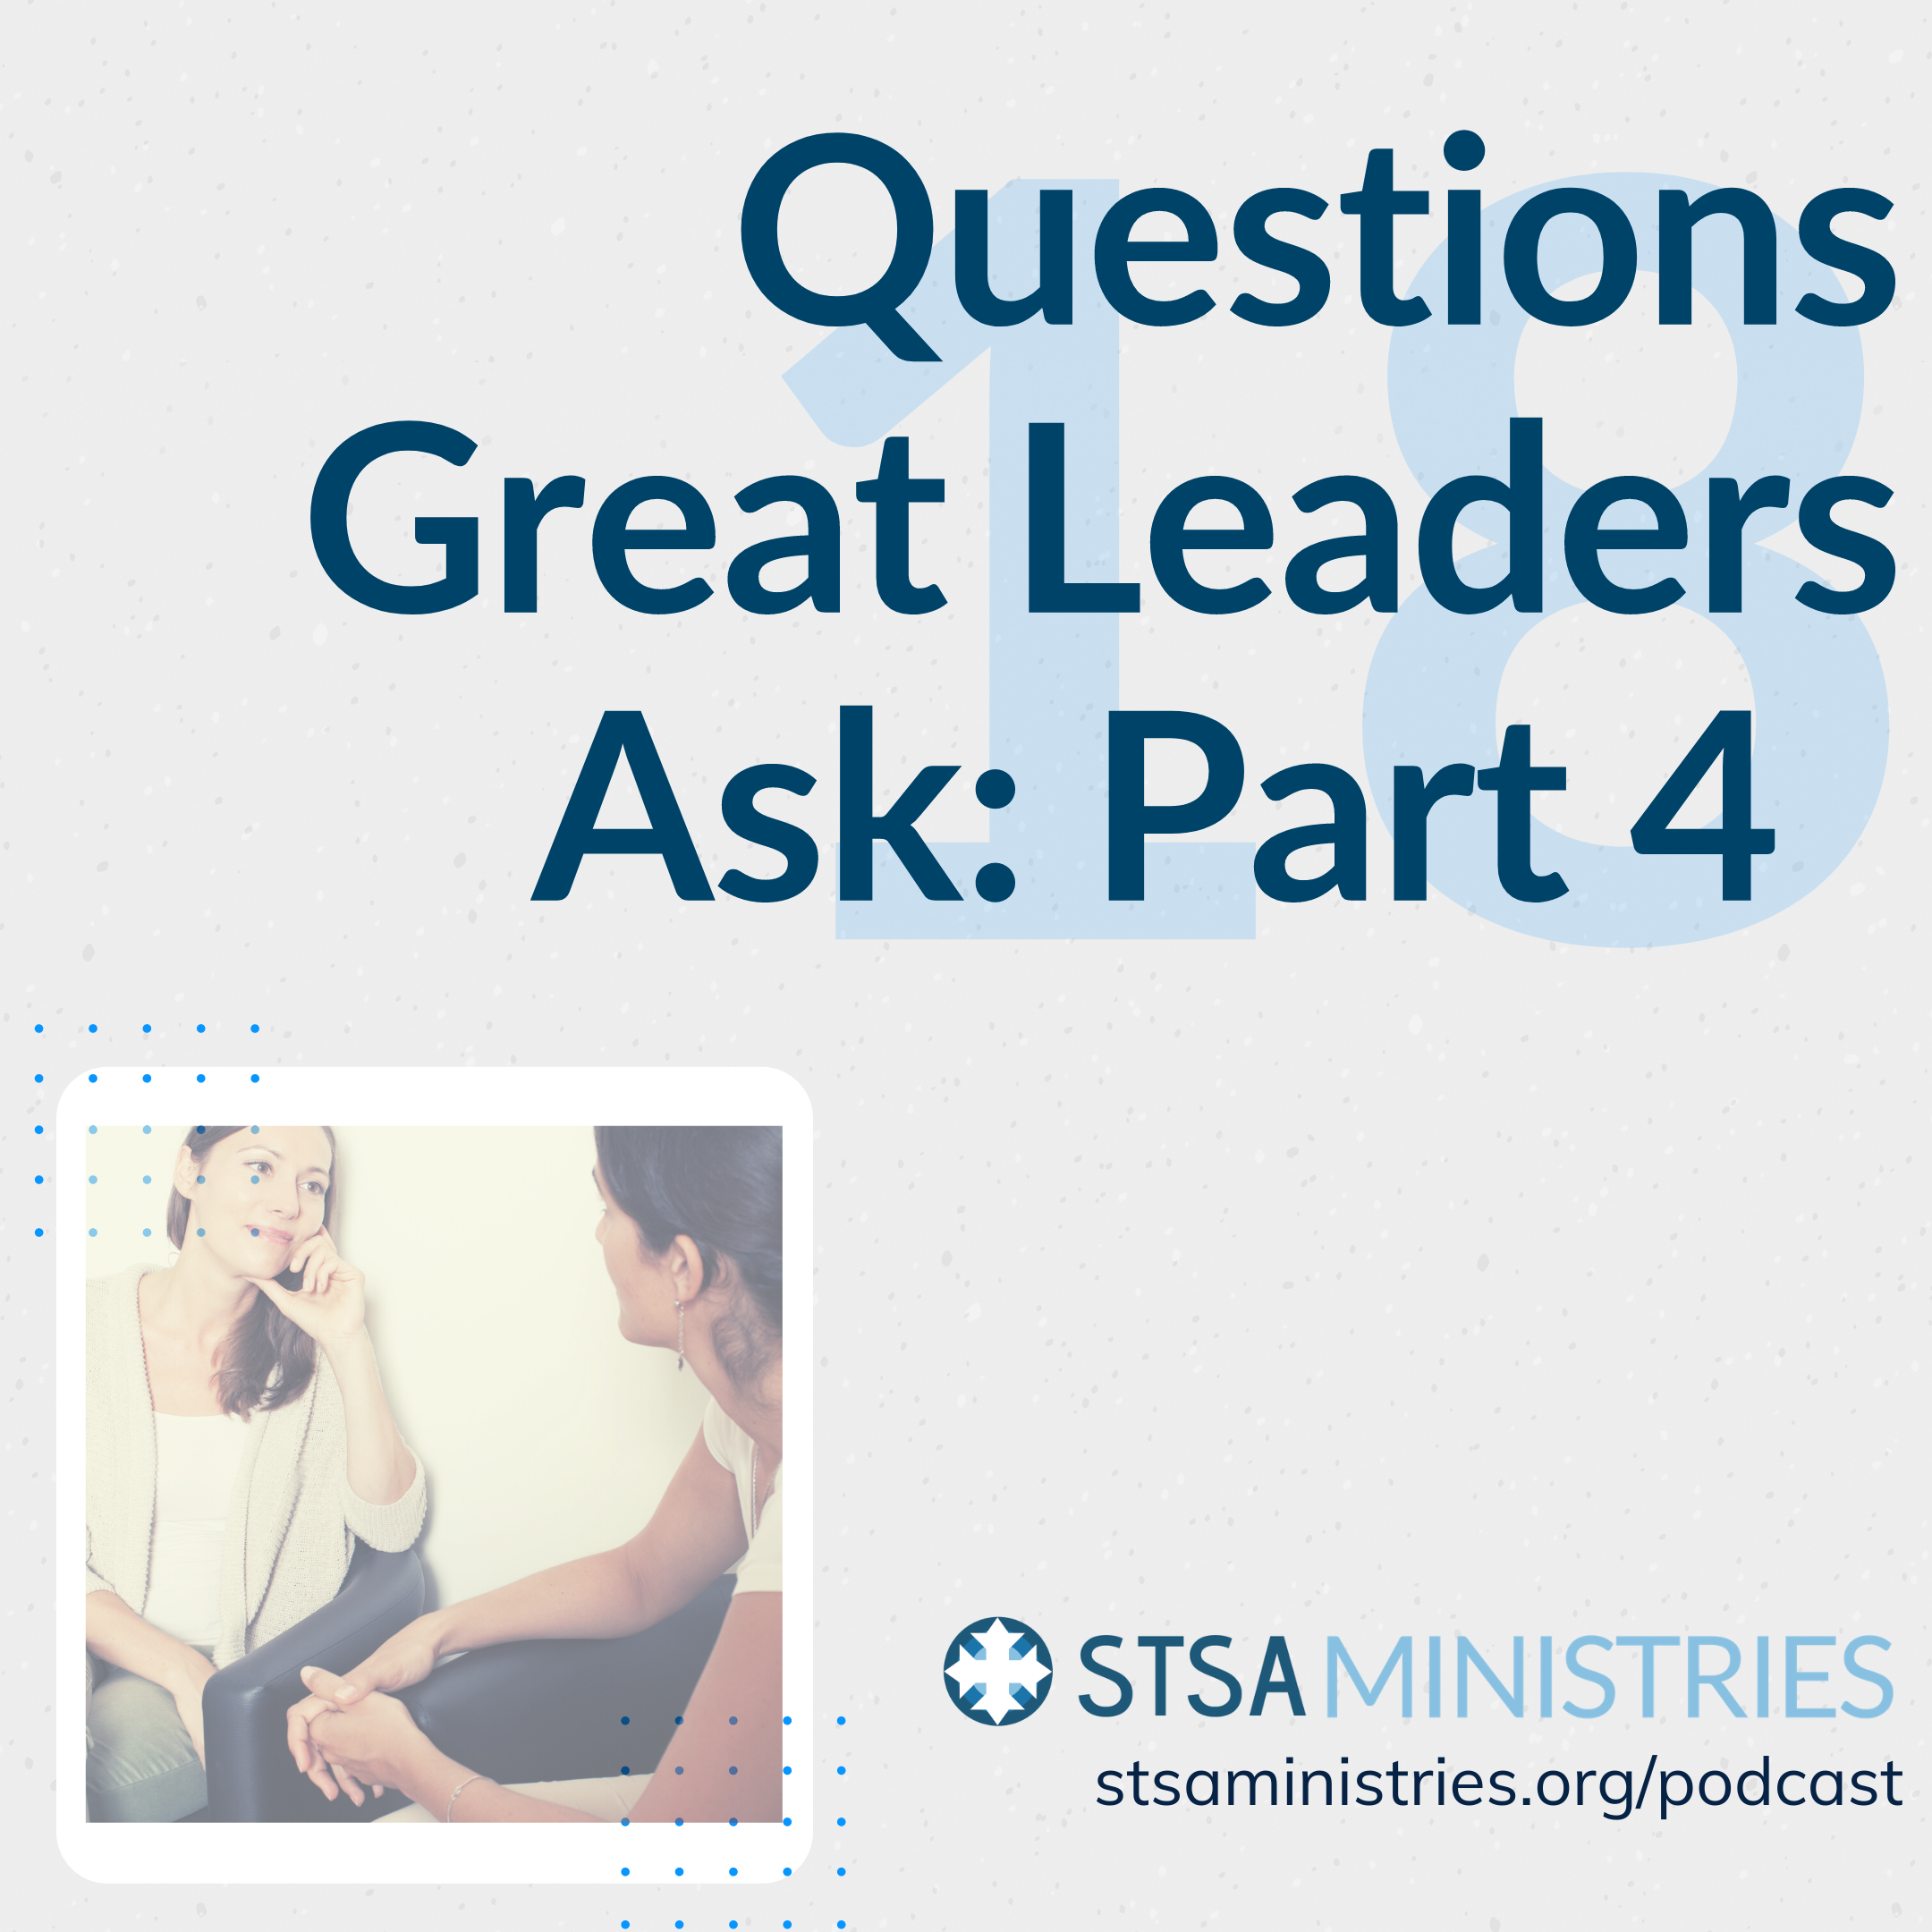 Question Great Leaders Ask - Part 4